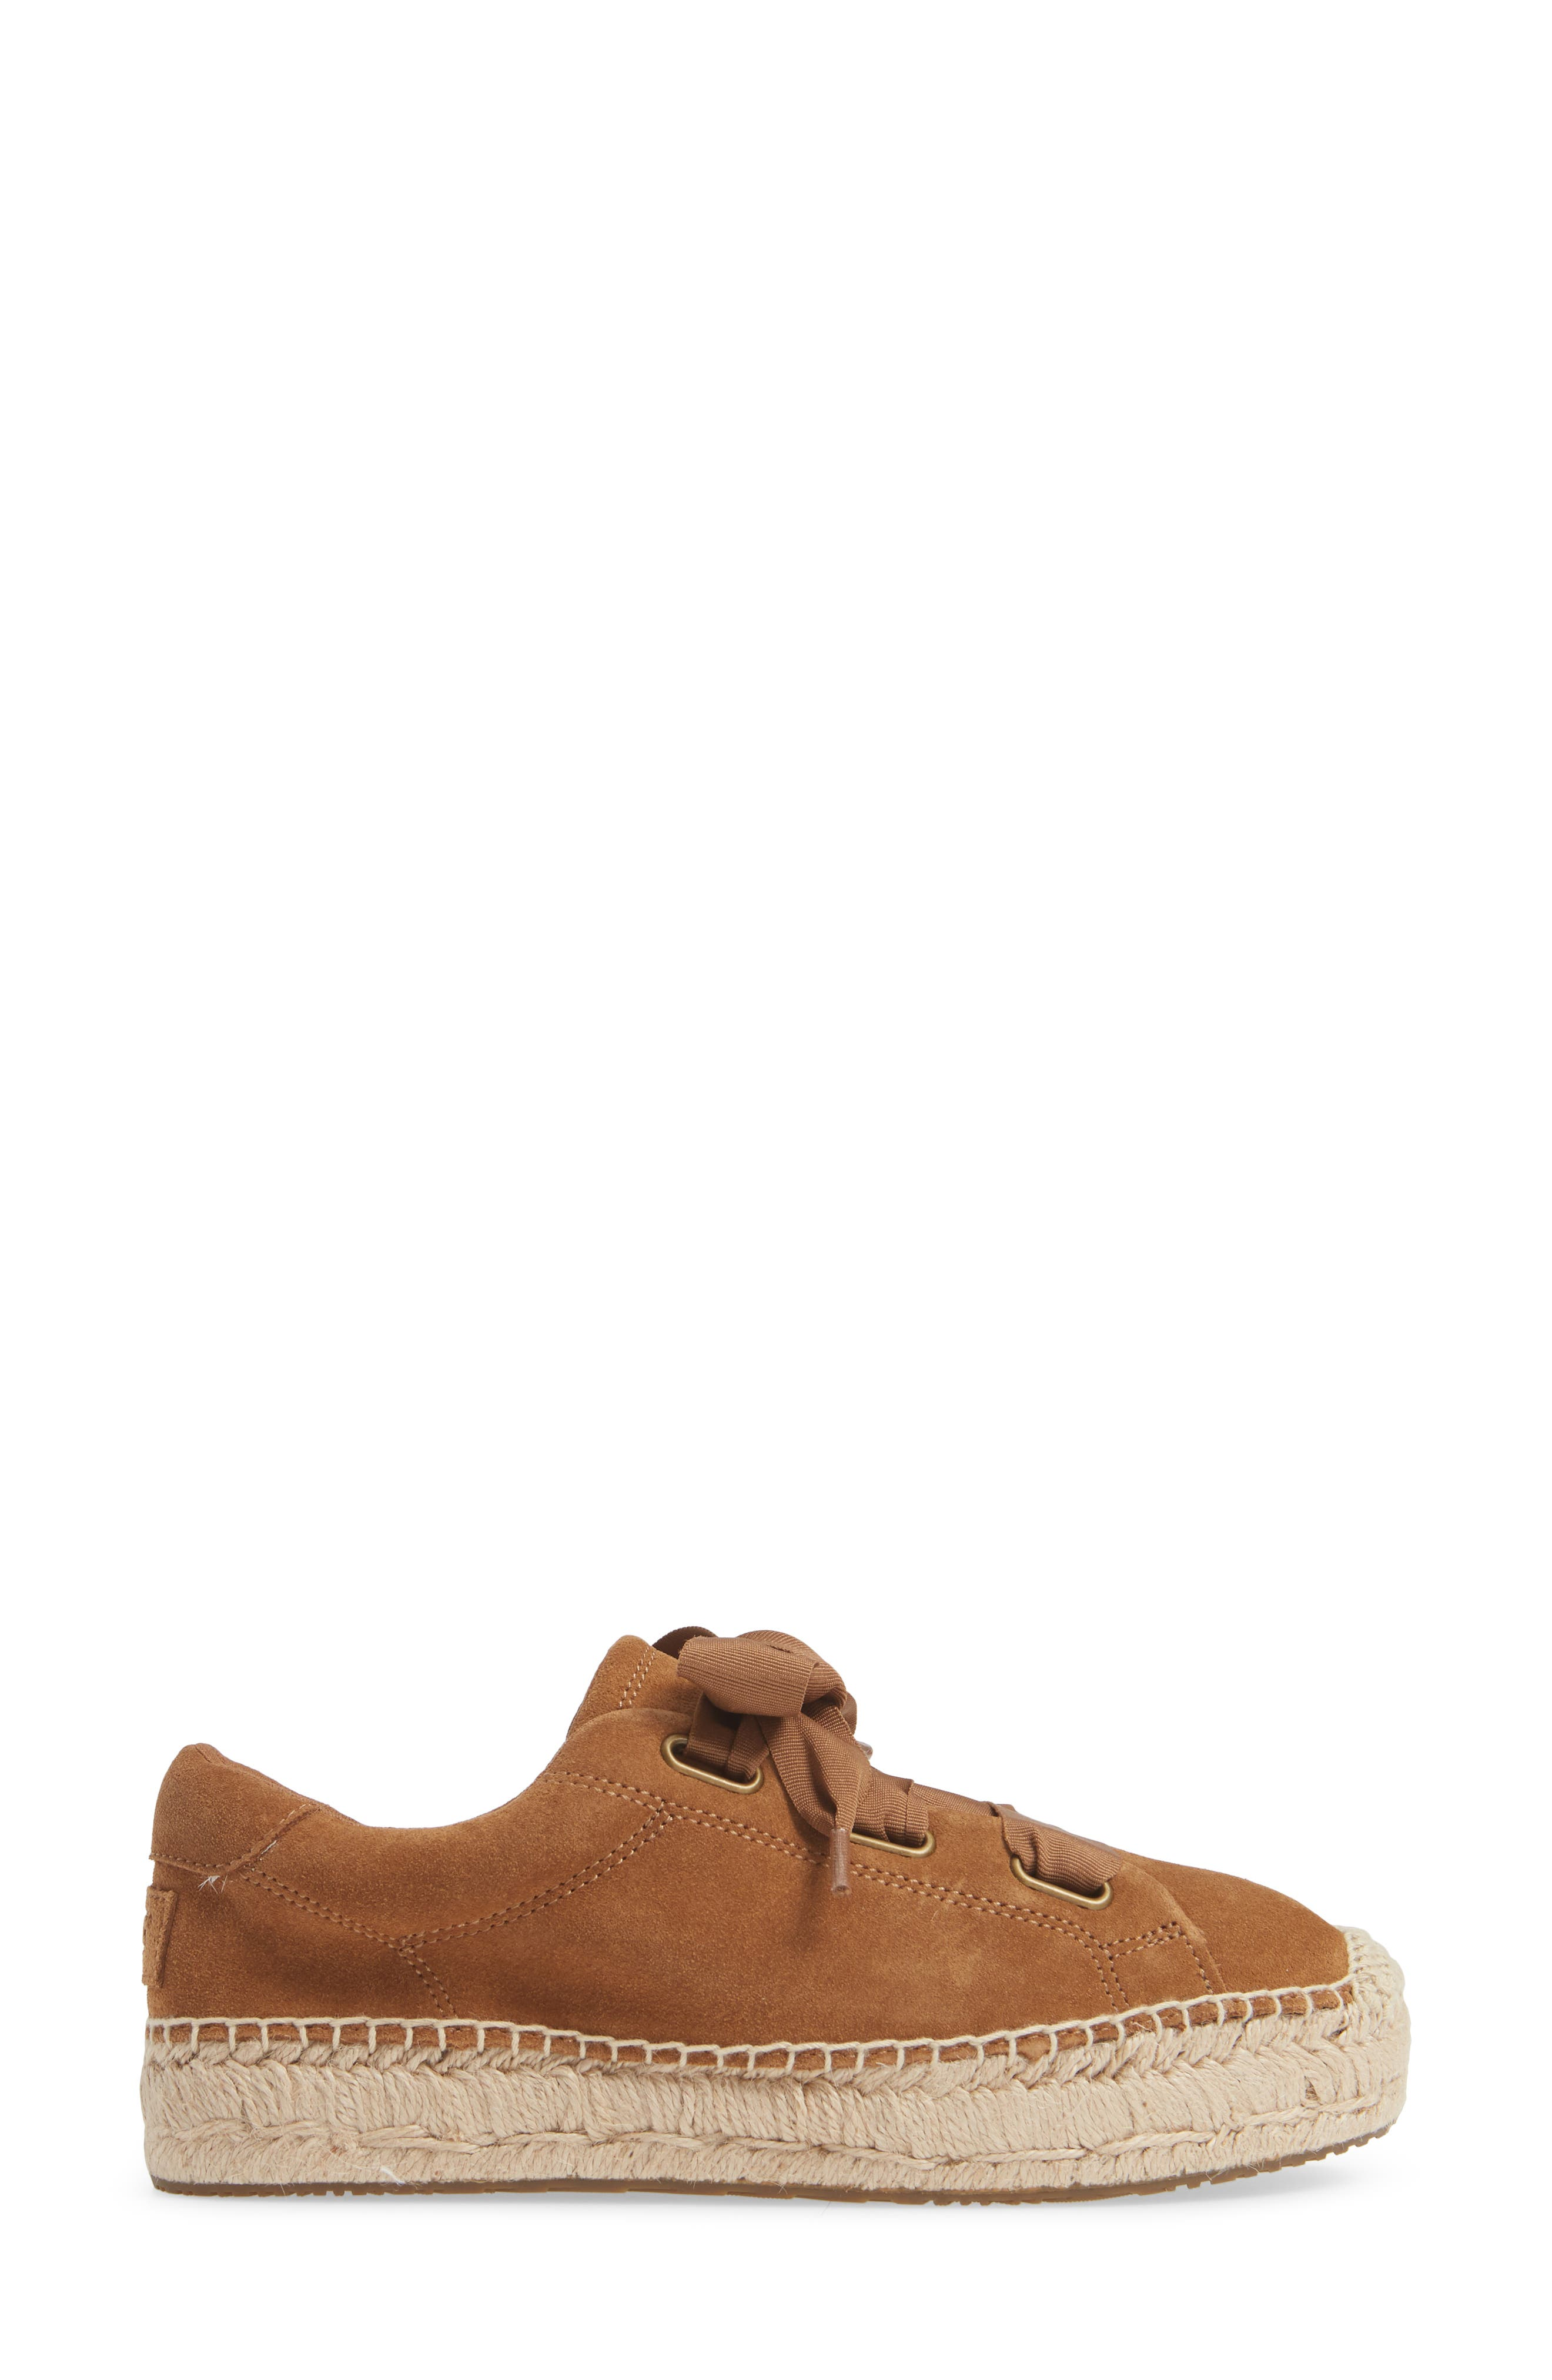 UGG<SUP>®</SUP>, Brianna Sneaker, Alternate thumbnail 3, color, CHESTNUT SUEDE